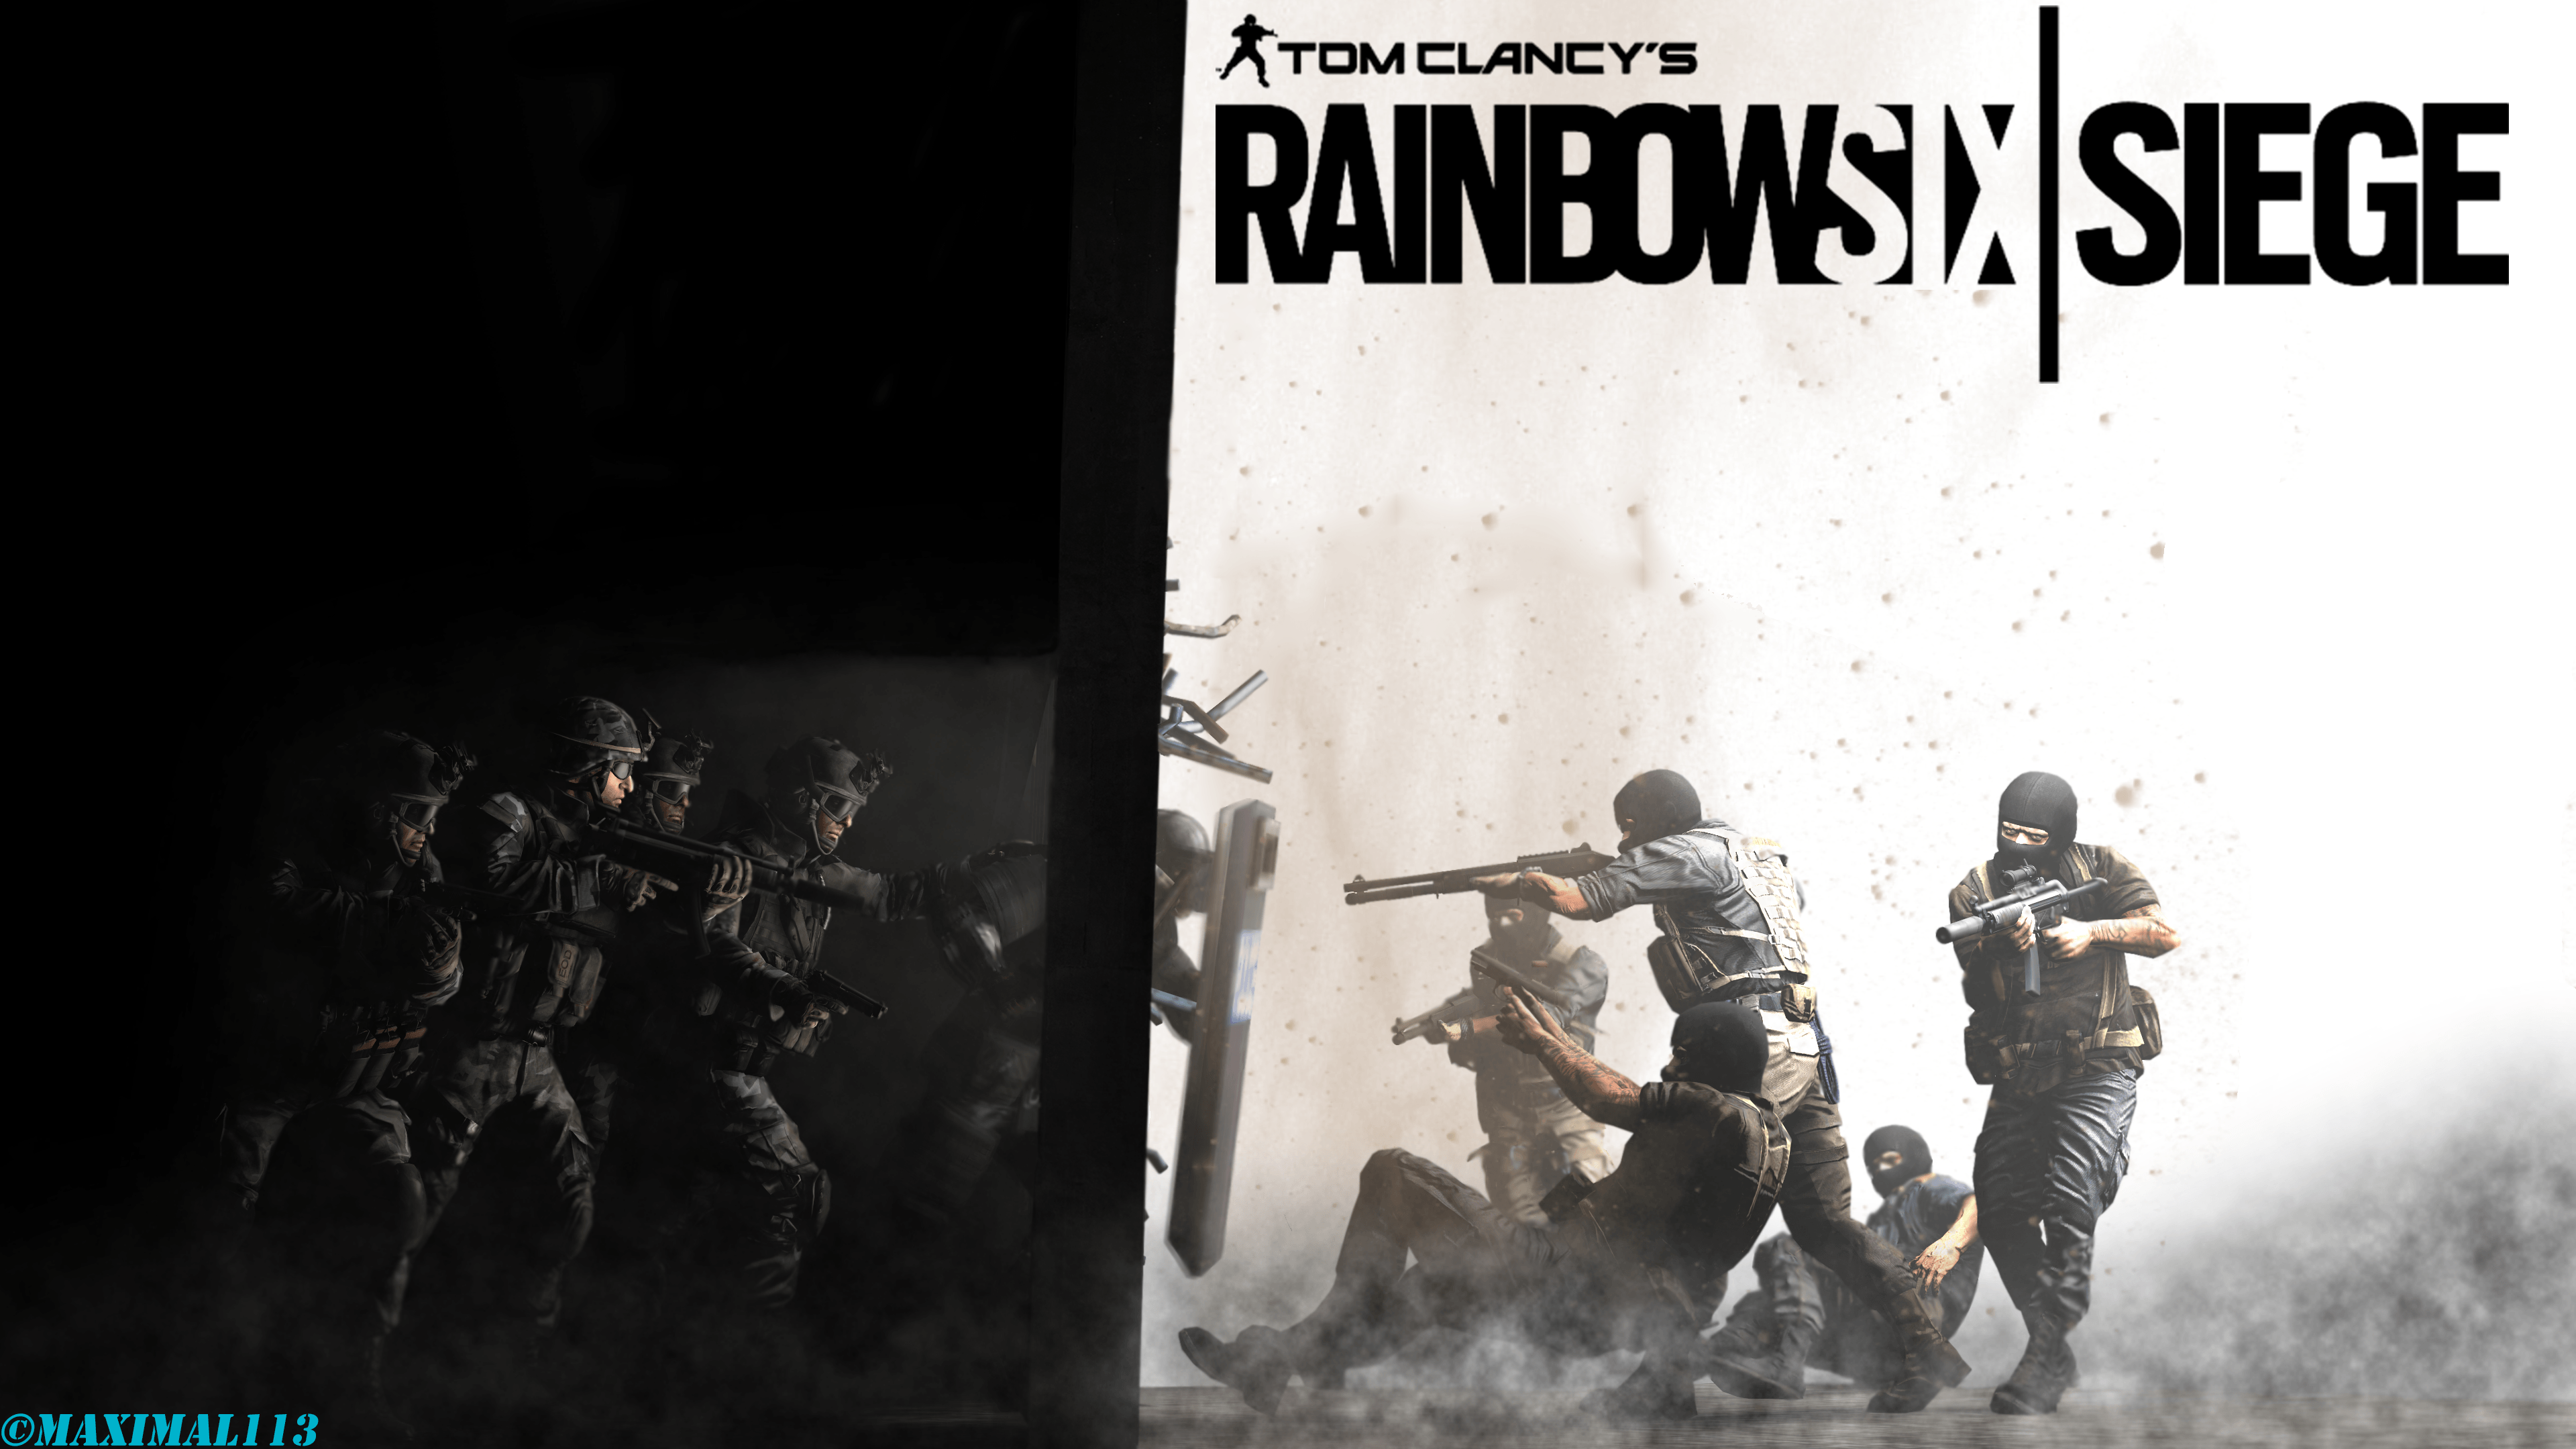 Rainbow Six Siege Wallpaper Hd: Rainbow Six Siege Wallpapers